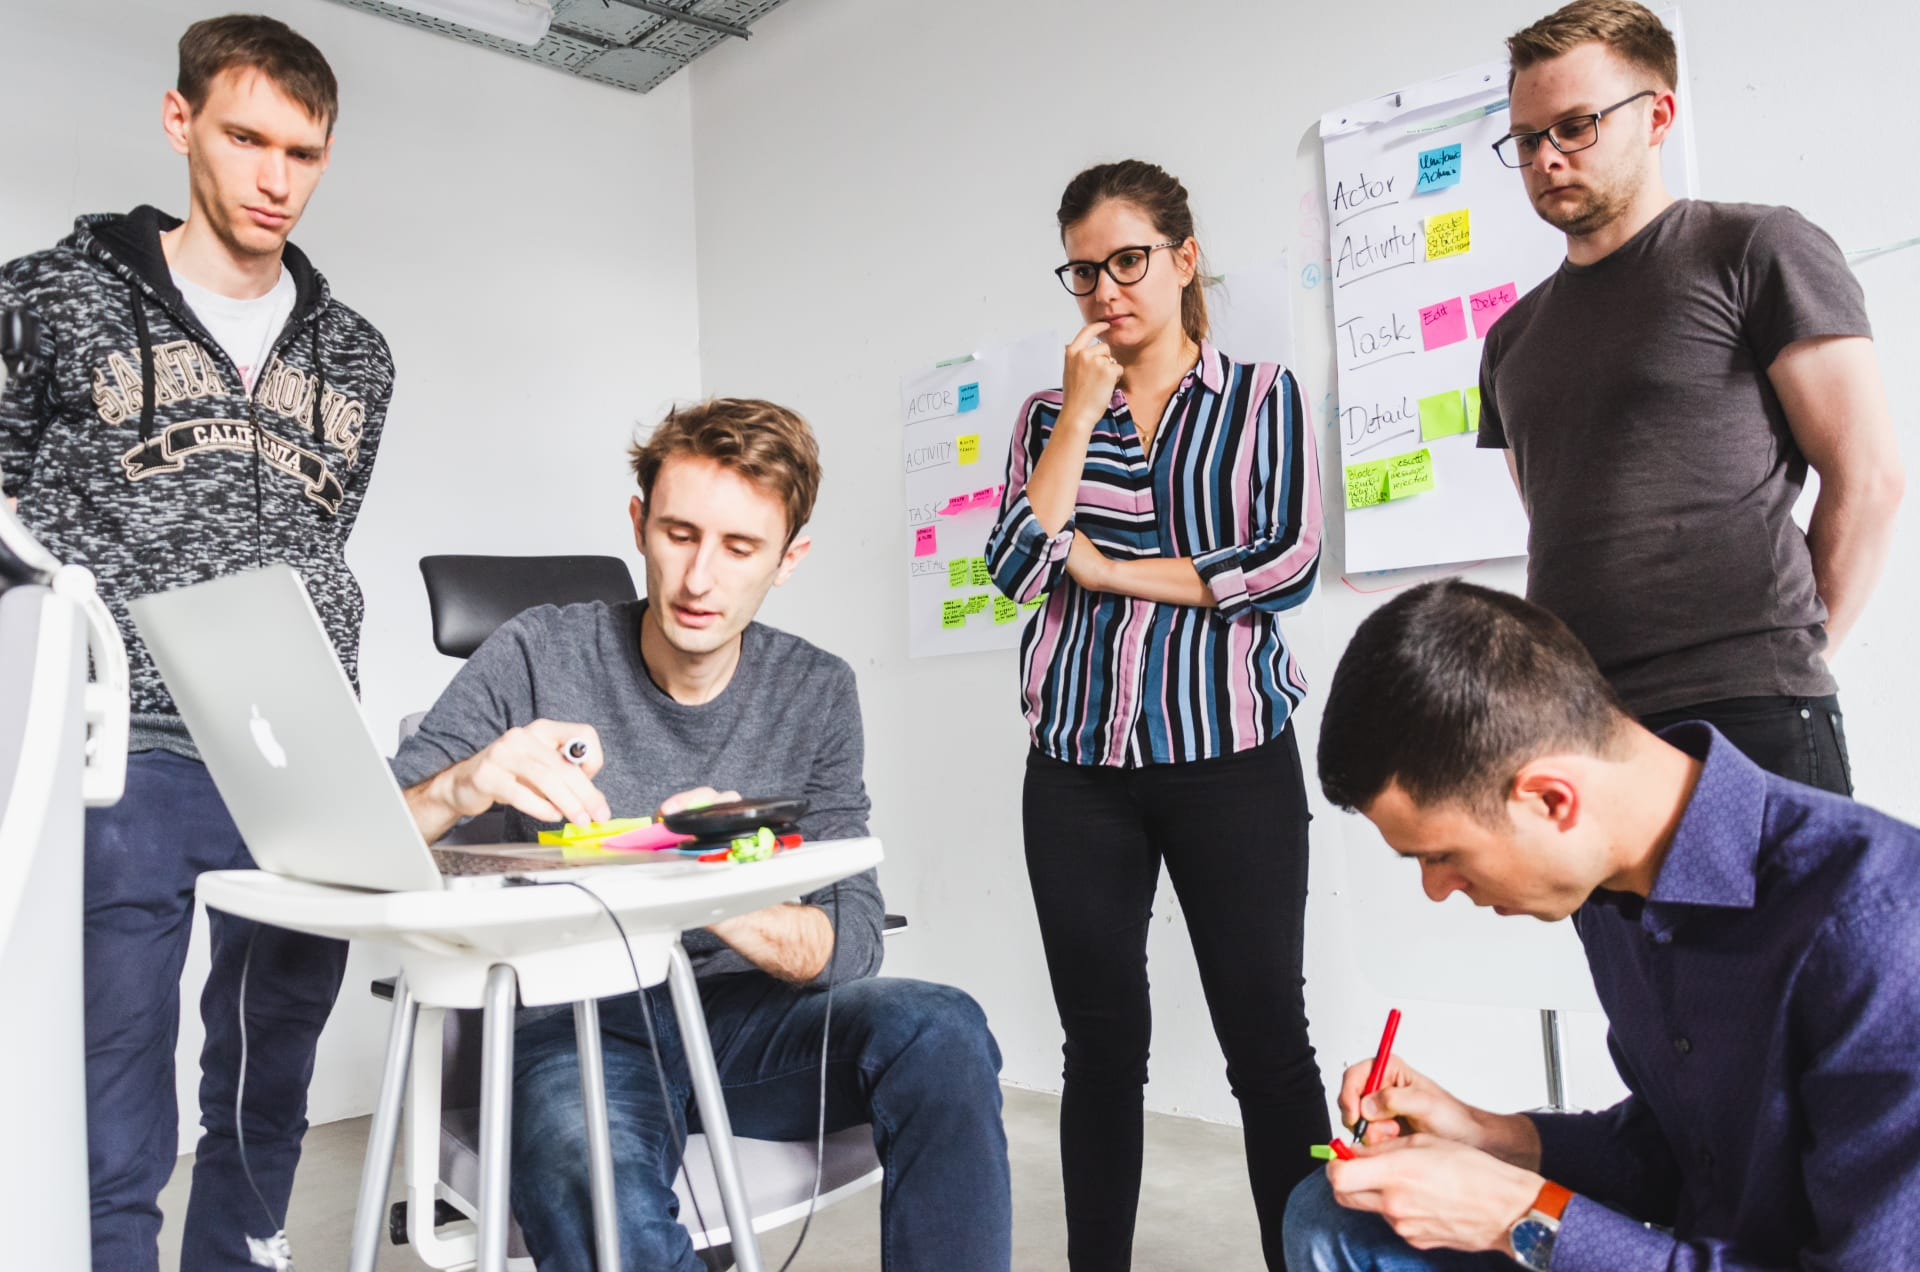 How Prototyping Can Bring Your Business Ideas to Life